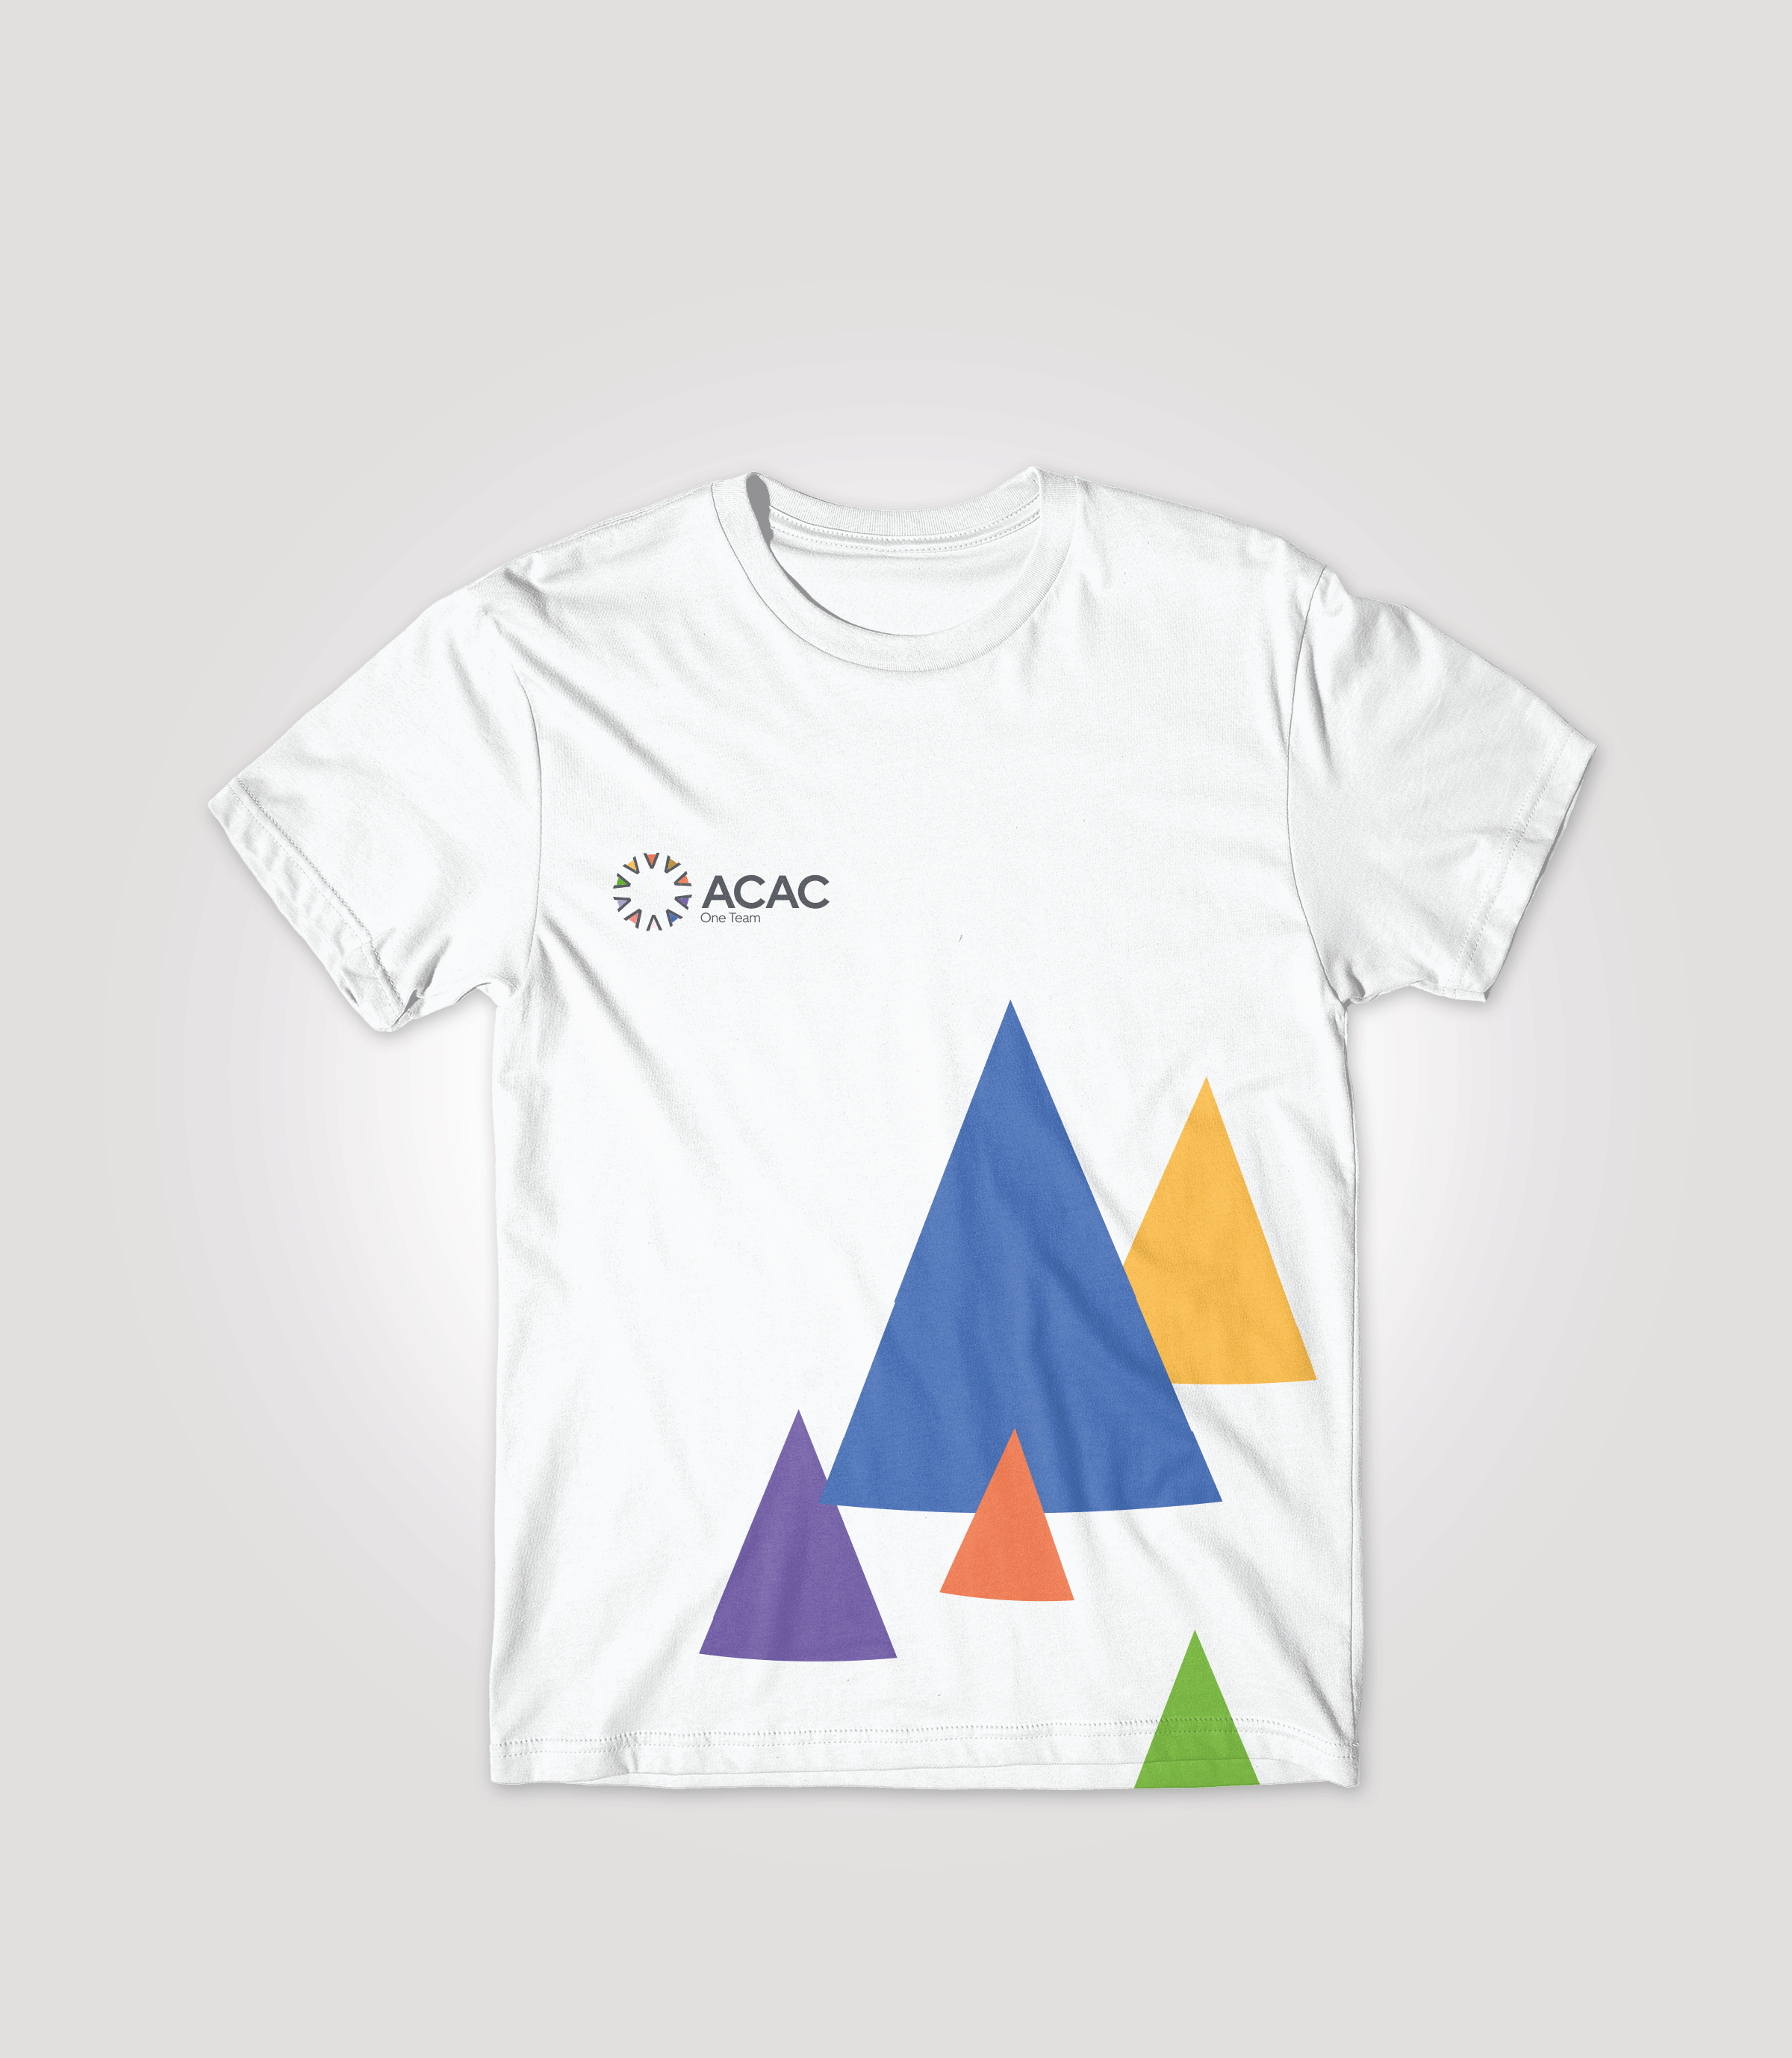 TShirt-Realistic-Template-03-Front.png